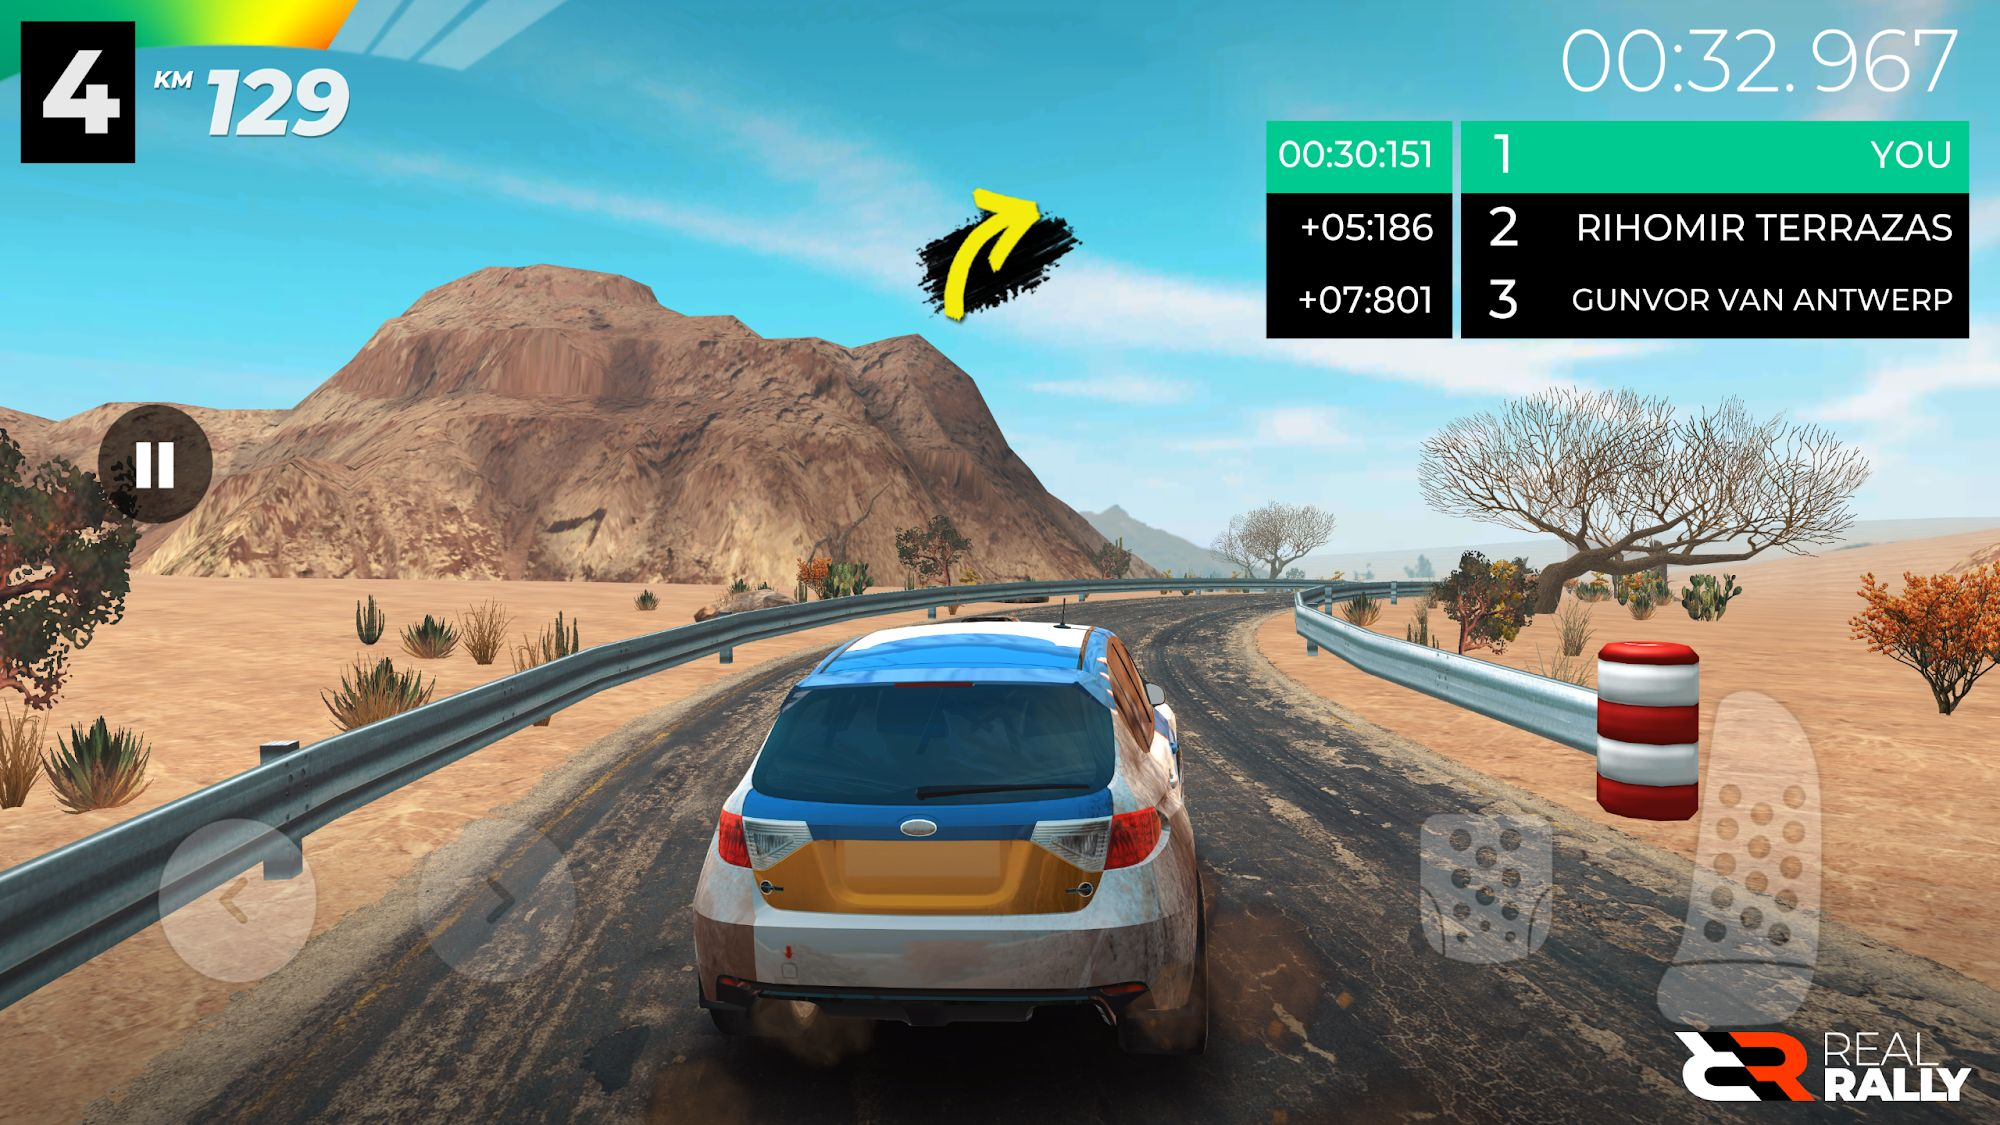 Real Rally para Android